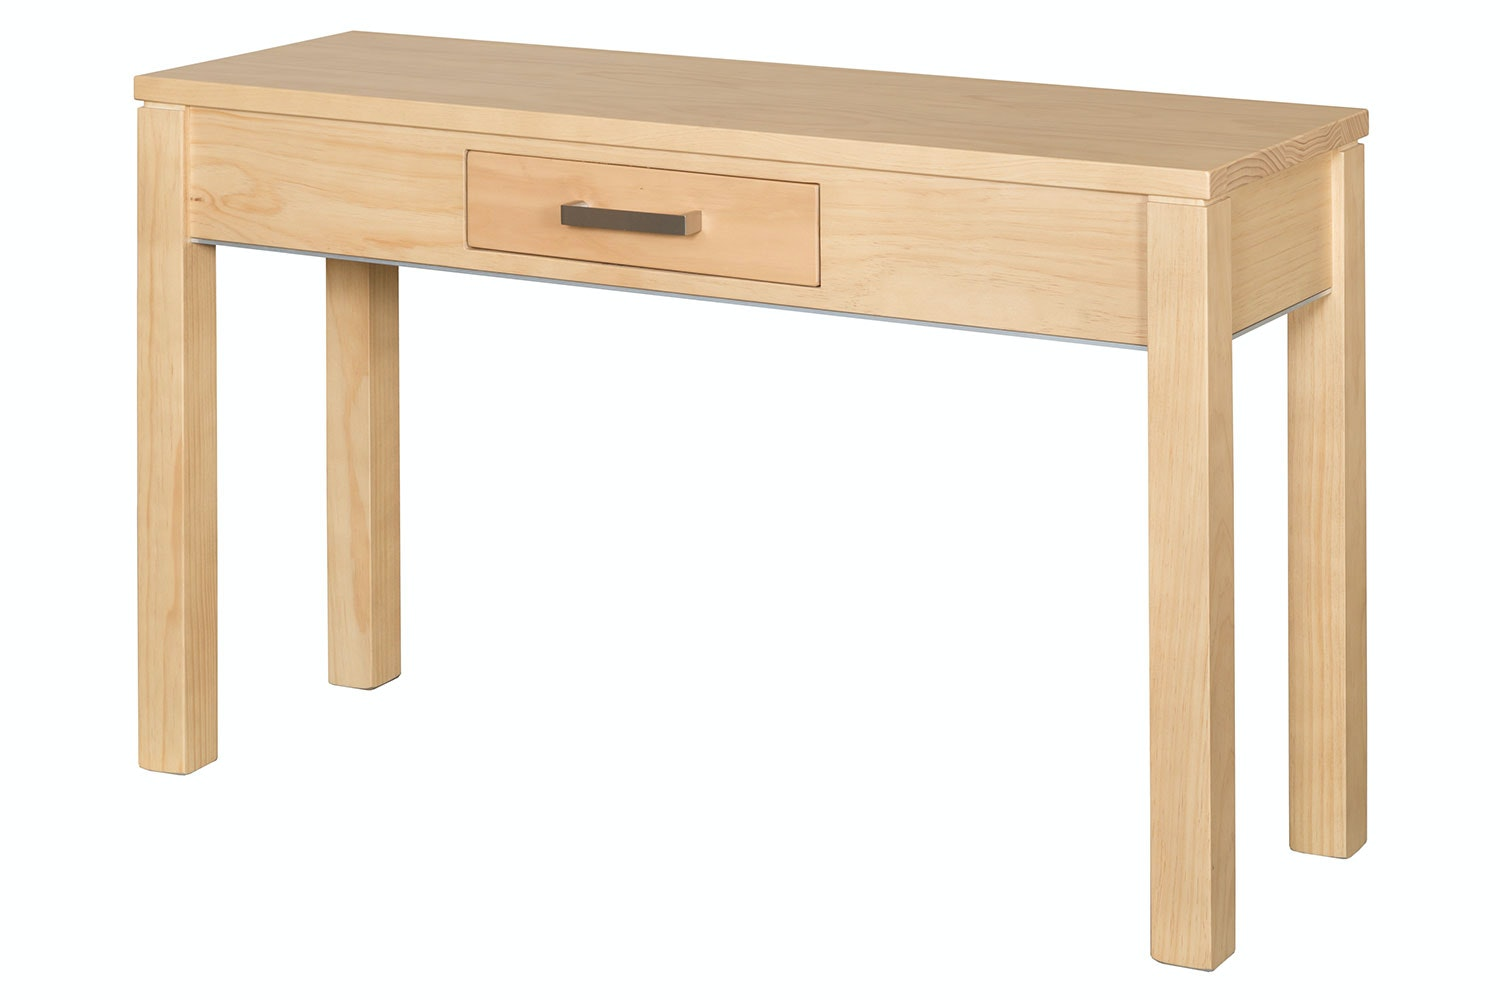 Light Oak Metro Hall Table by Coastwood Furniture